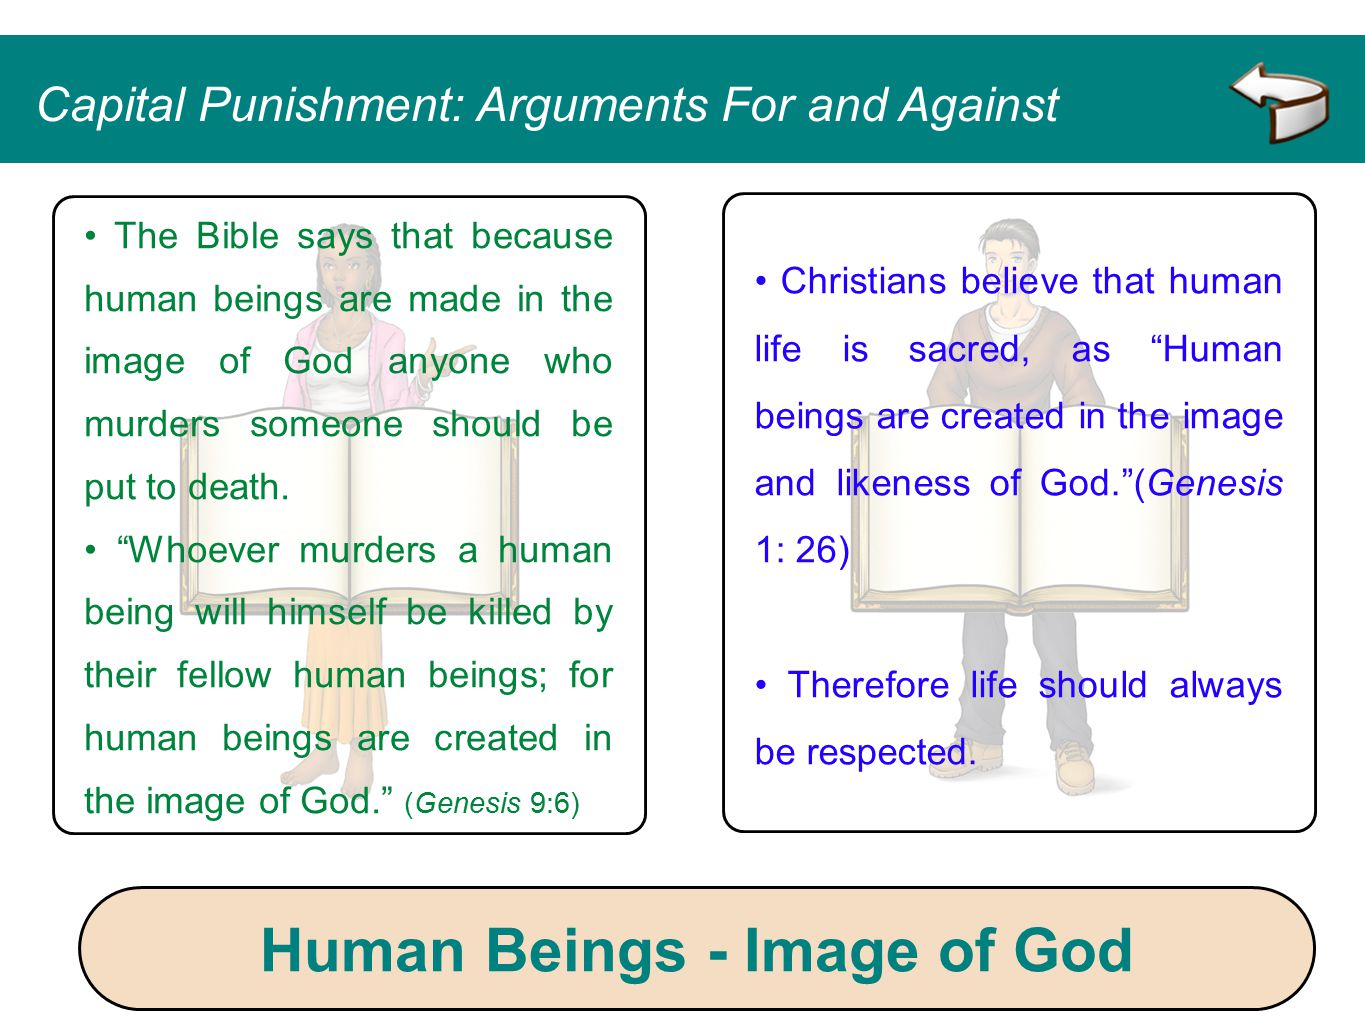 Human Beings - Image of God